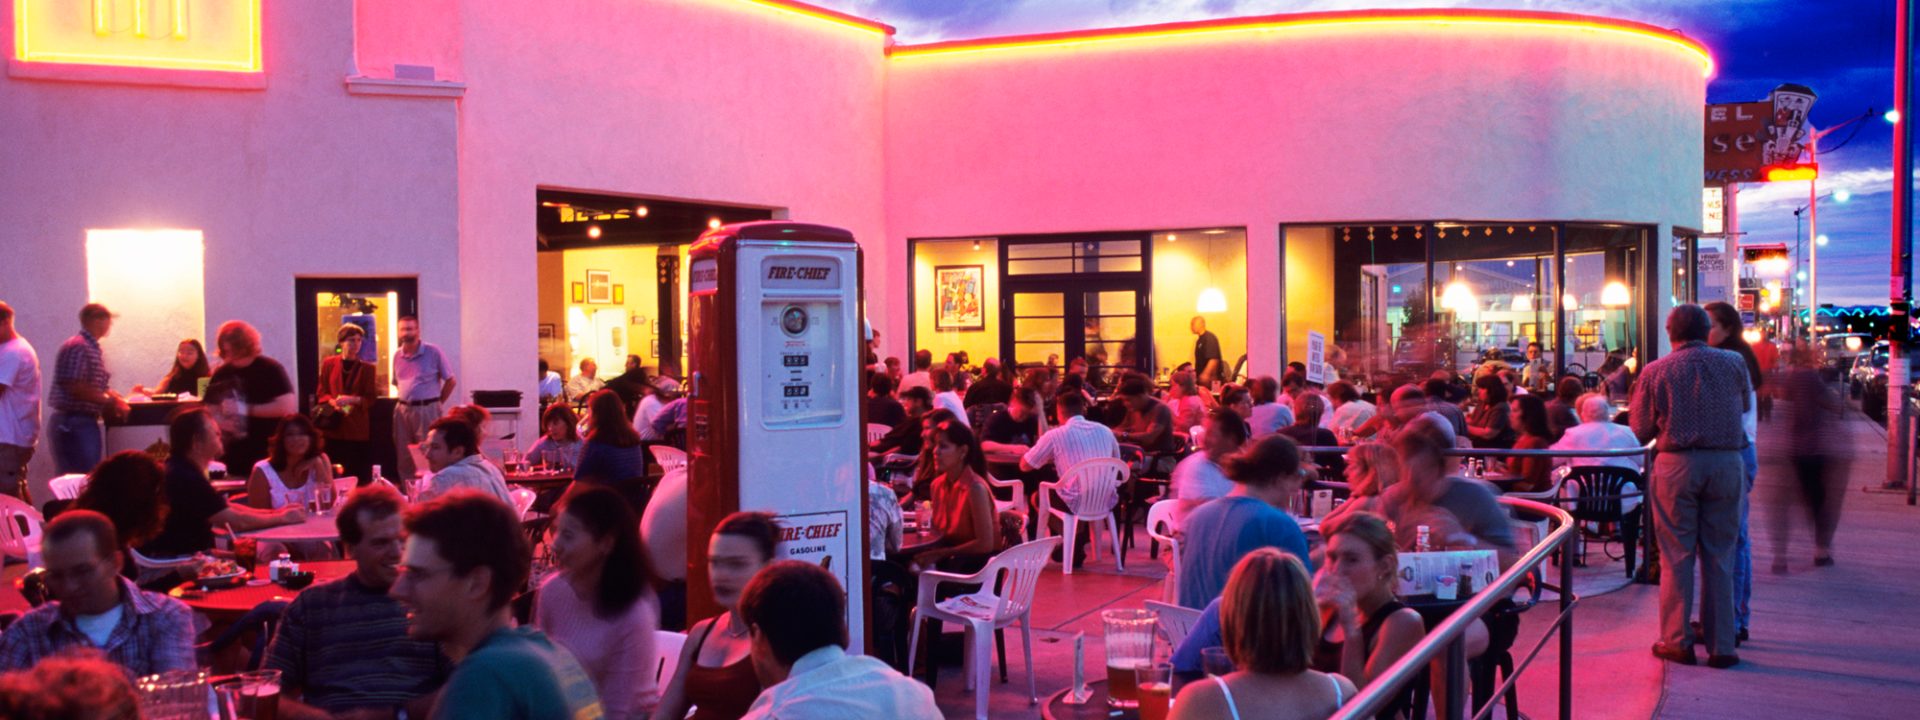 A restaurants patio lit up with neon lights in Albuquerque's Nob Hill neighborhood